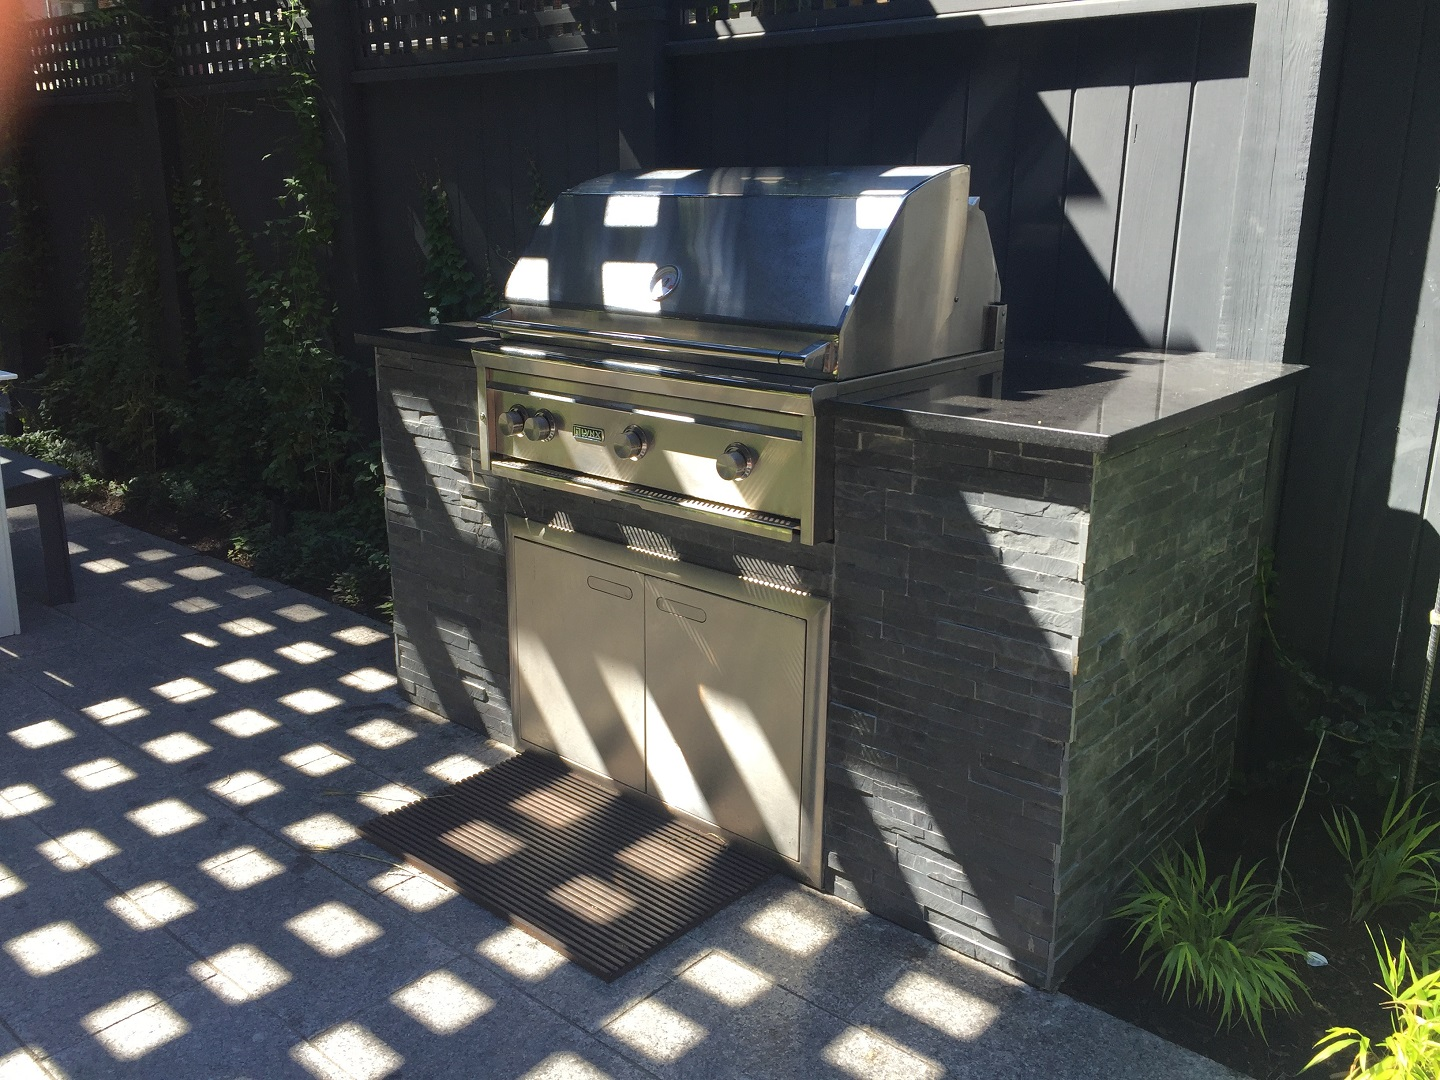 Landscape design with stunning outdoor kitchen in Lexington, MA